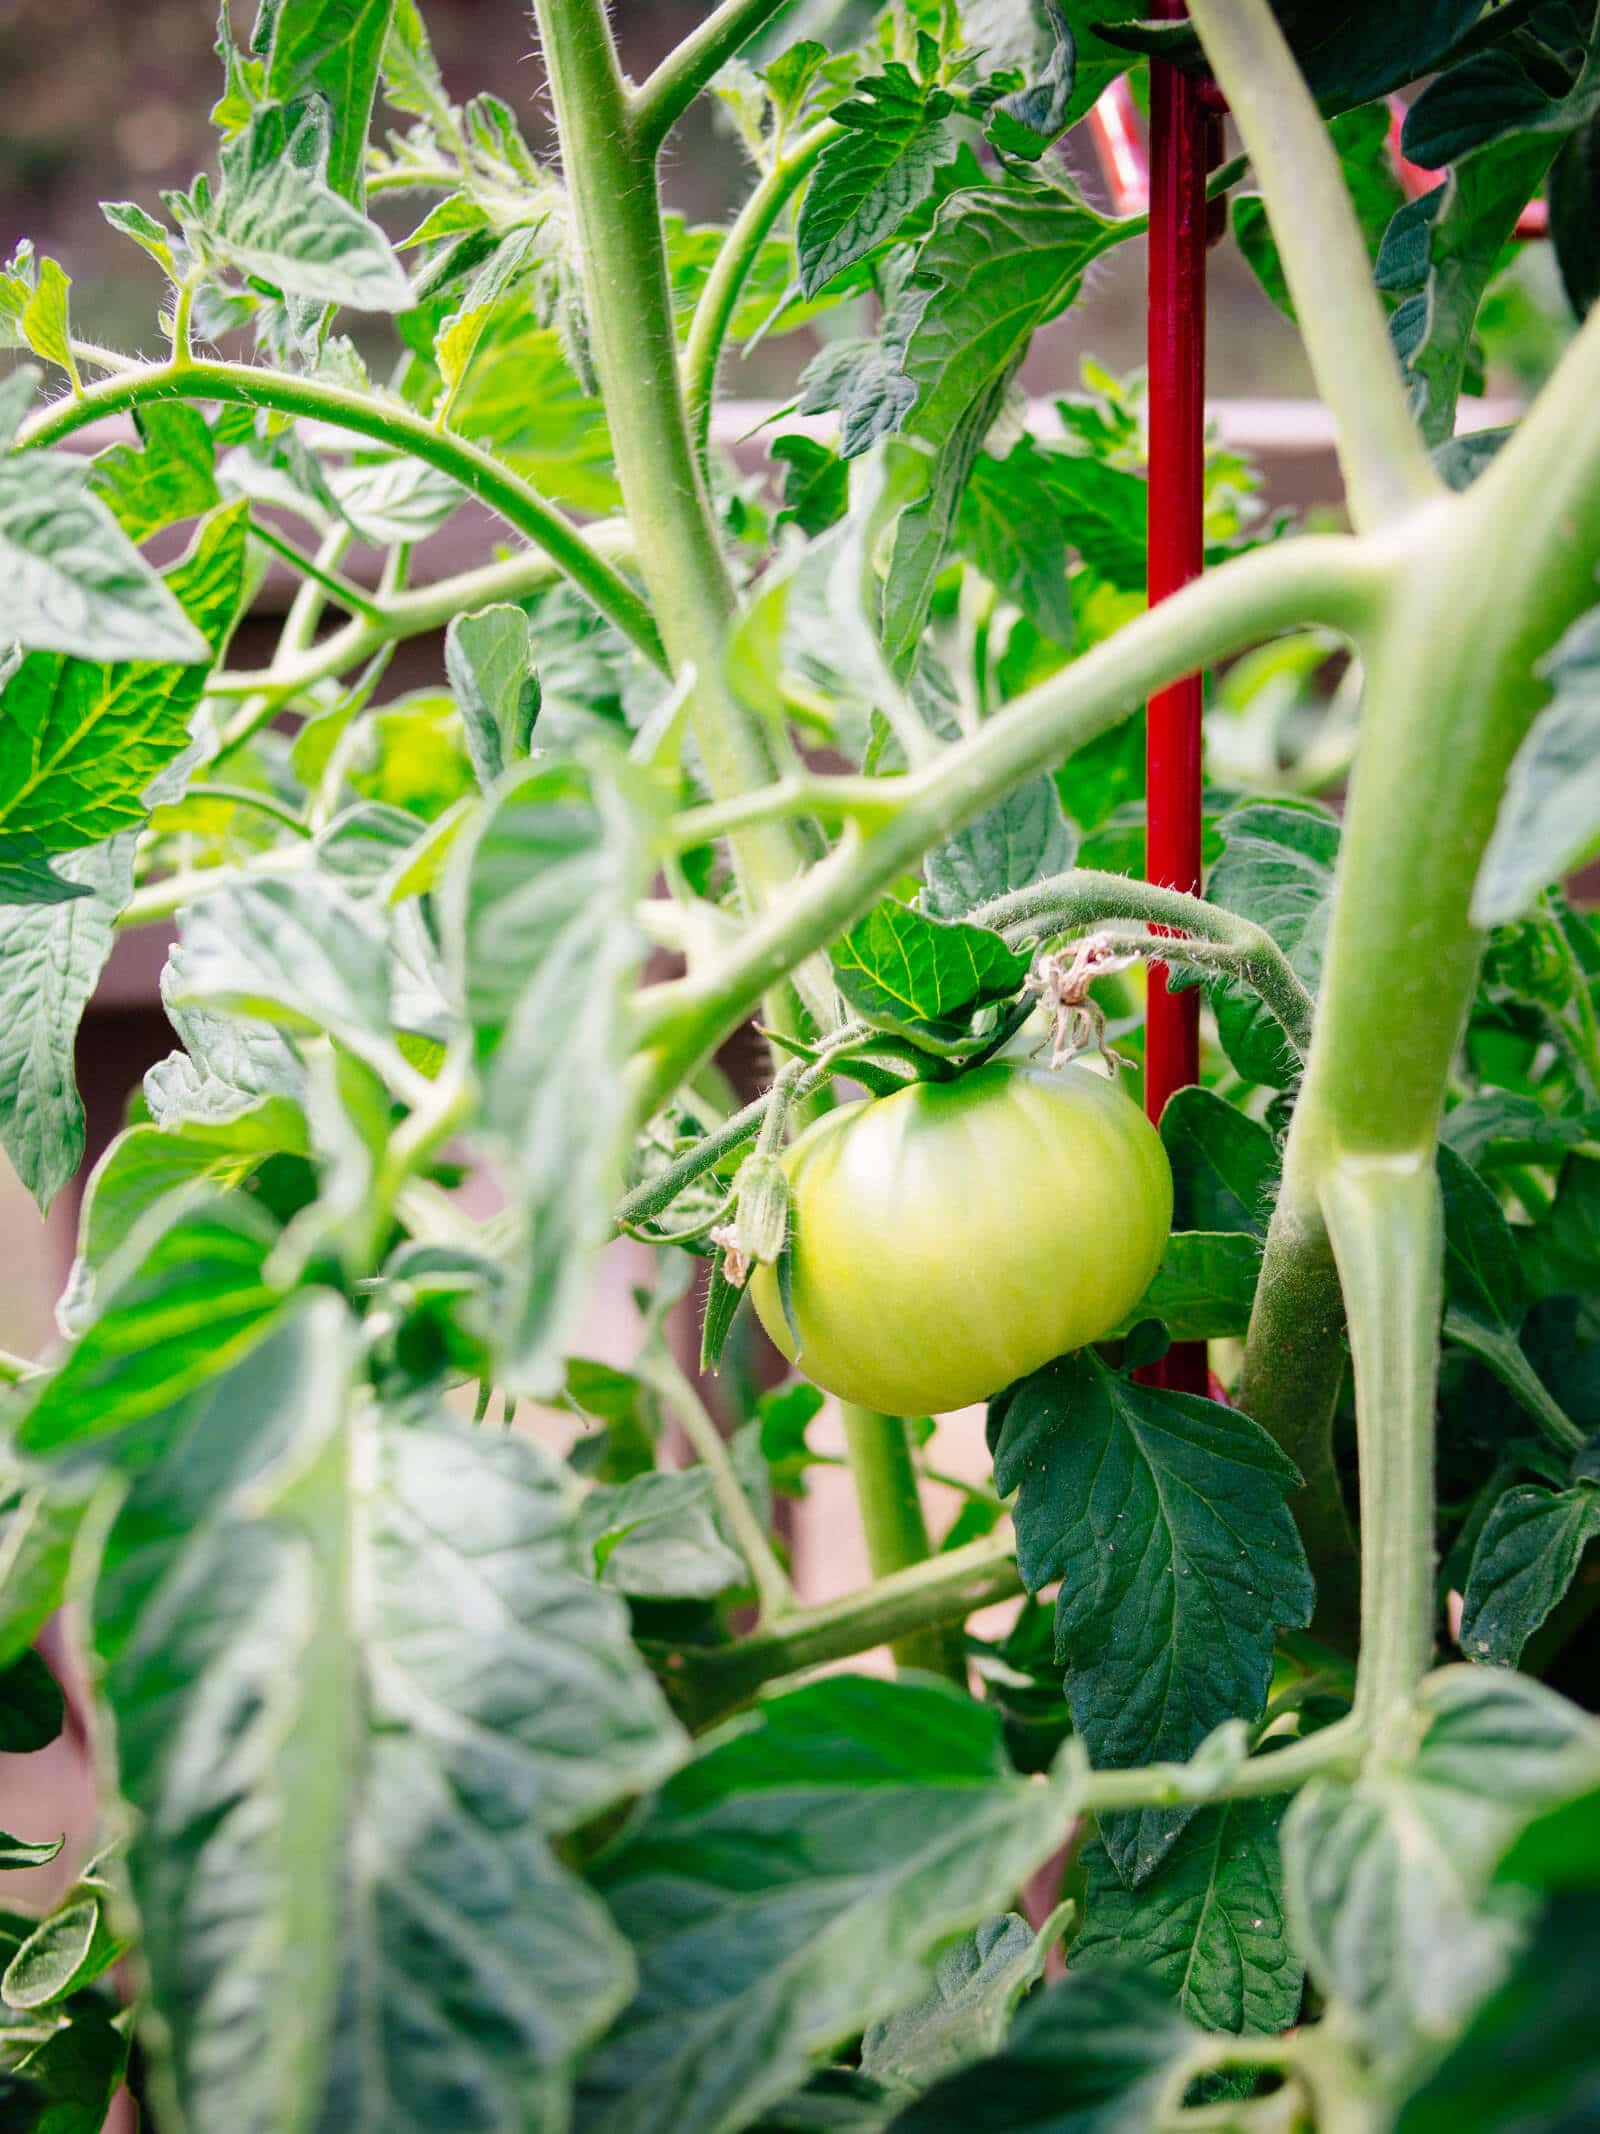 Grow indeterminate tomato plants in pots